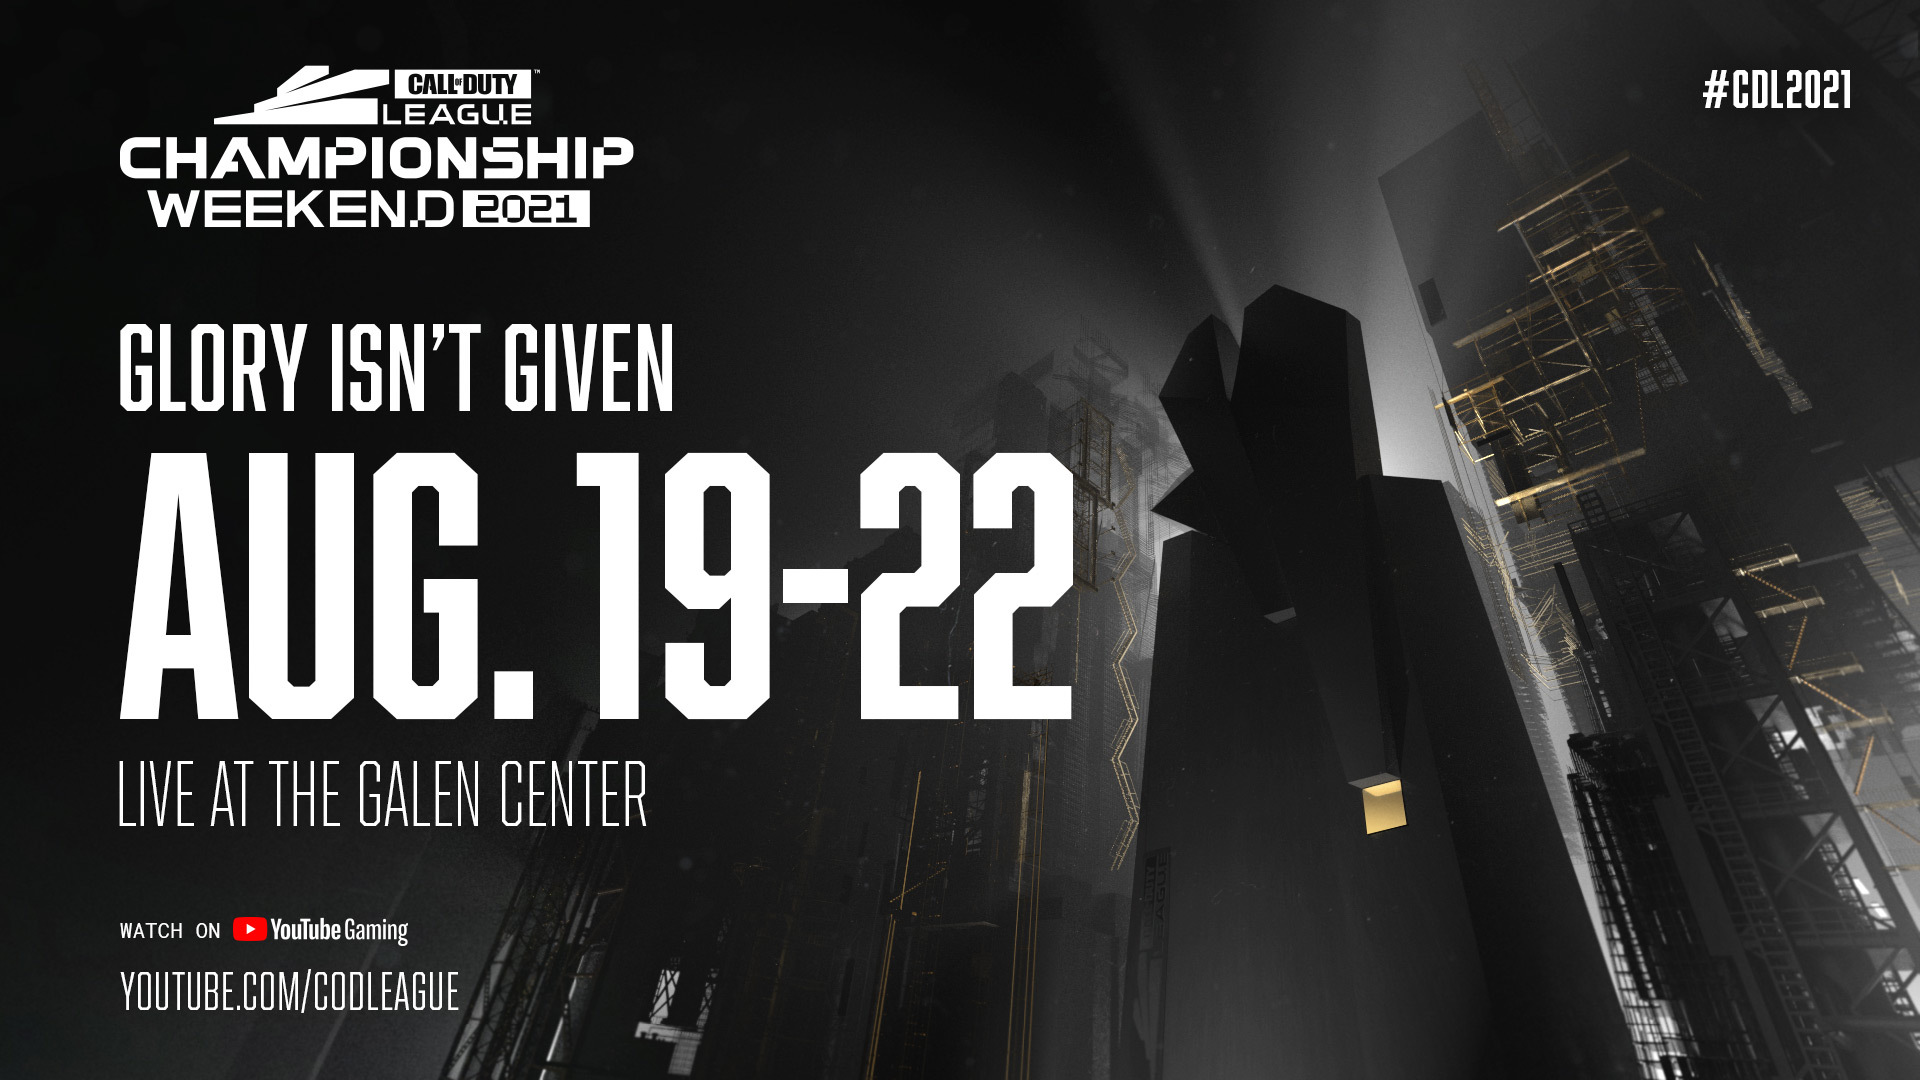 """Text reading """"Glory isn't given. Aug. 19 - 22. Live at the Gallen Center."""""""